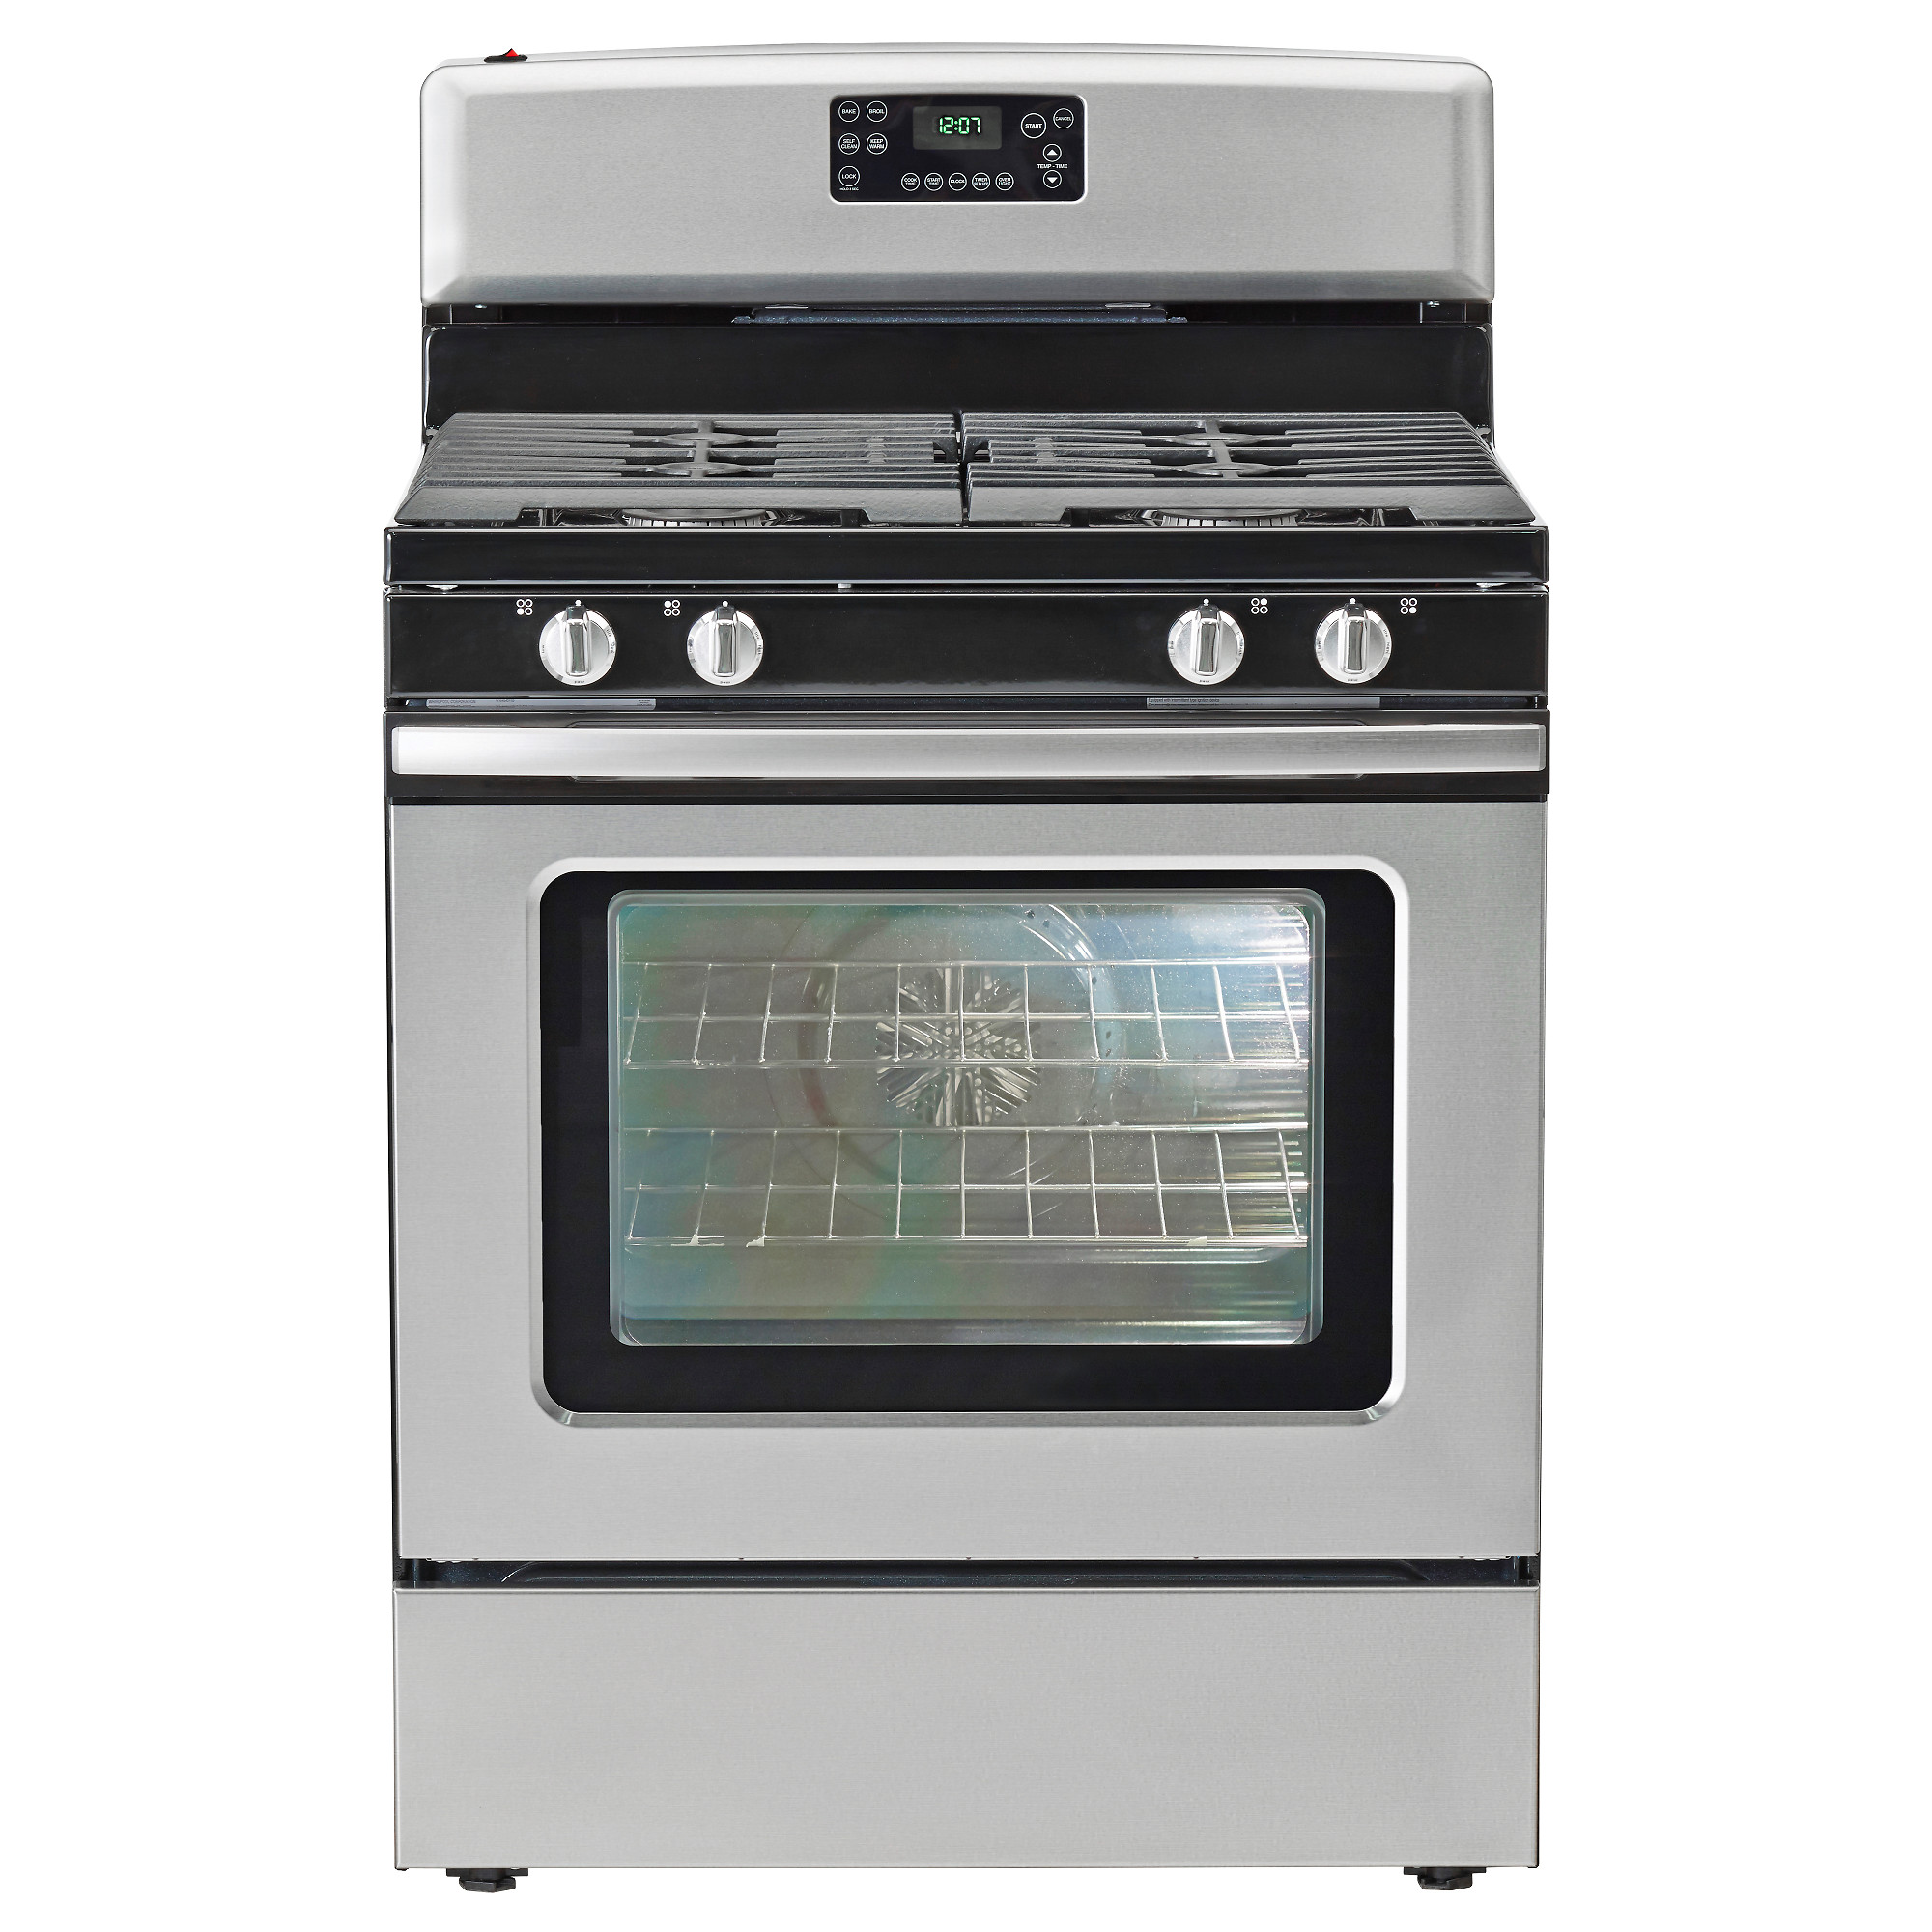 Uncategorized Kitchen Appliances Calgary stoves ikea betrodd range with gas cooktop stainless steel width 29 78 depth